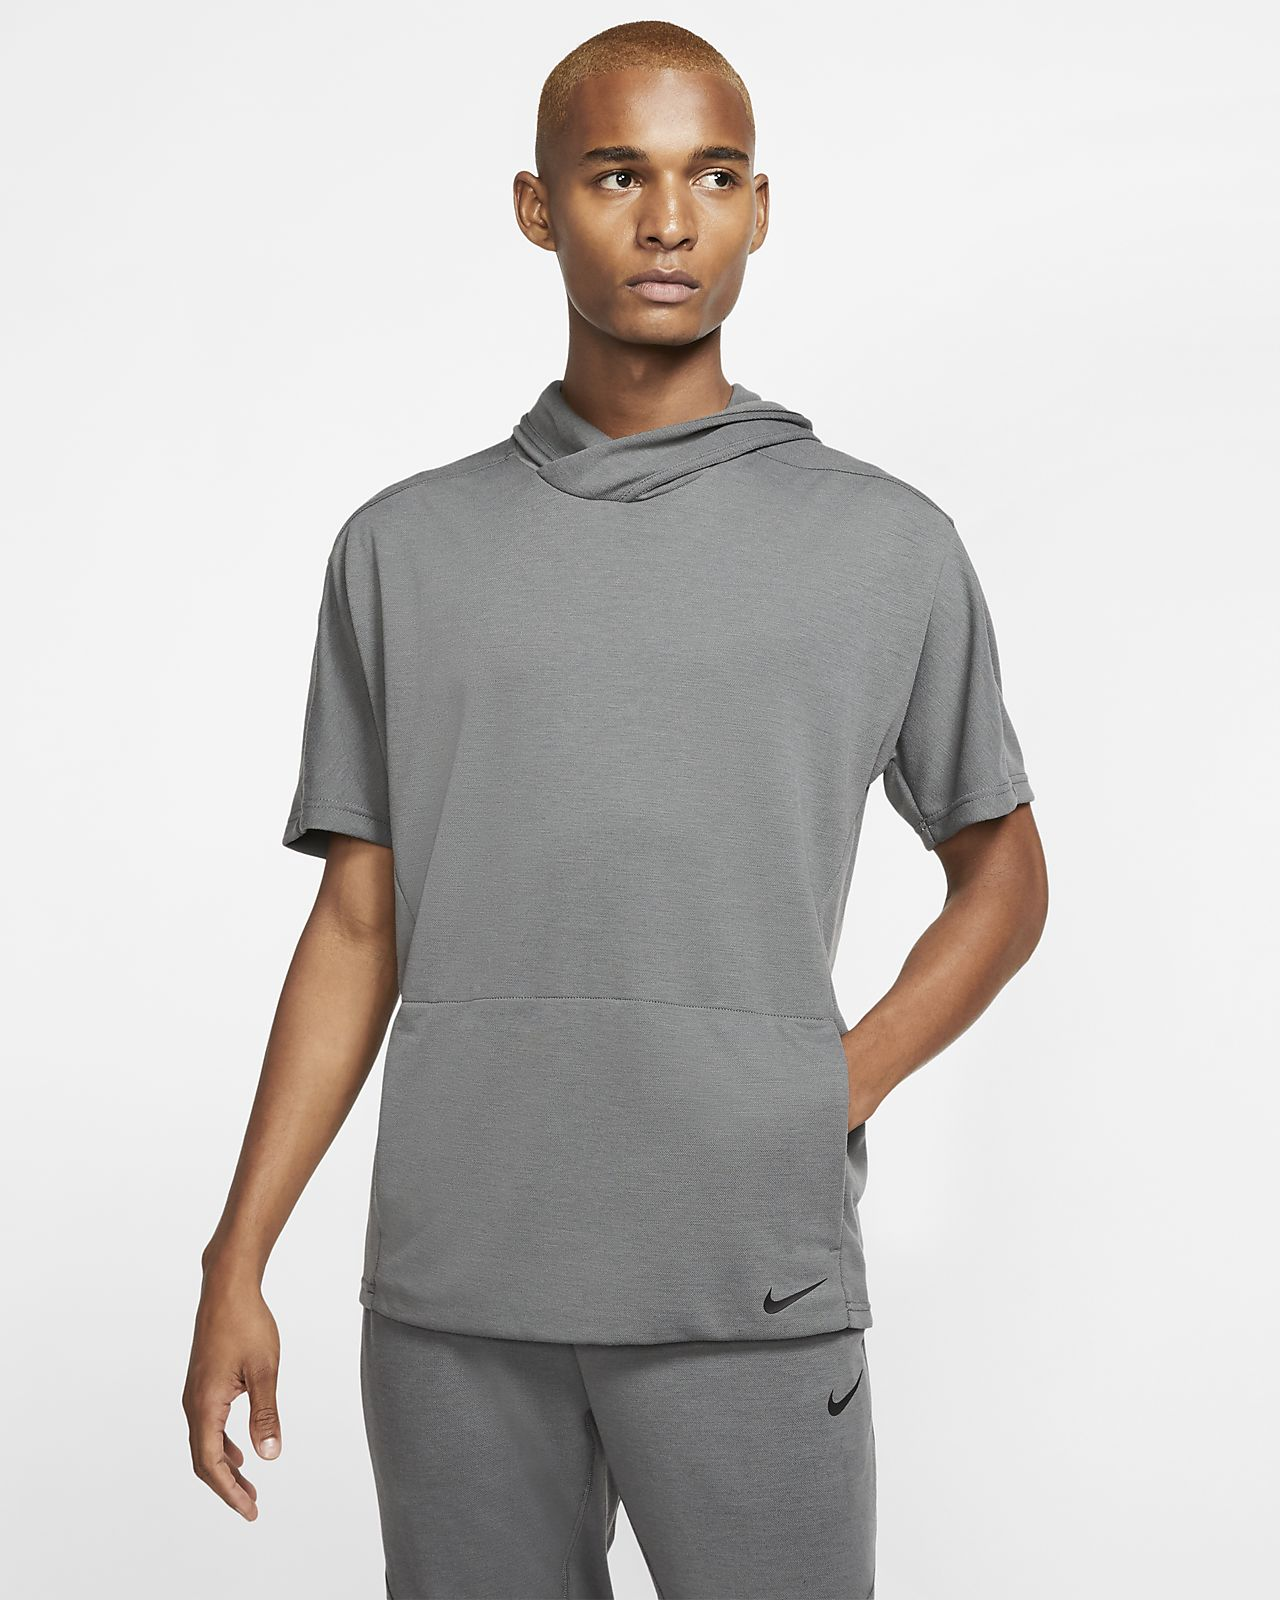 Nike Yoga Dri-FIT Men's Short-Sleeve Pullover Hoodie